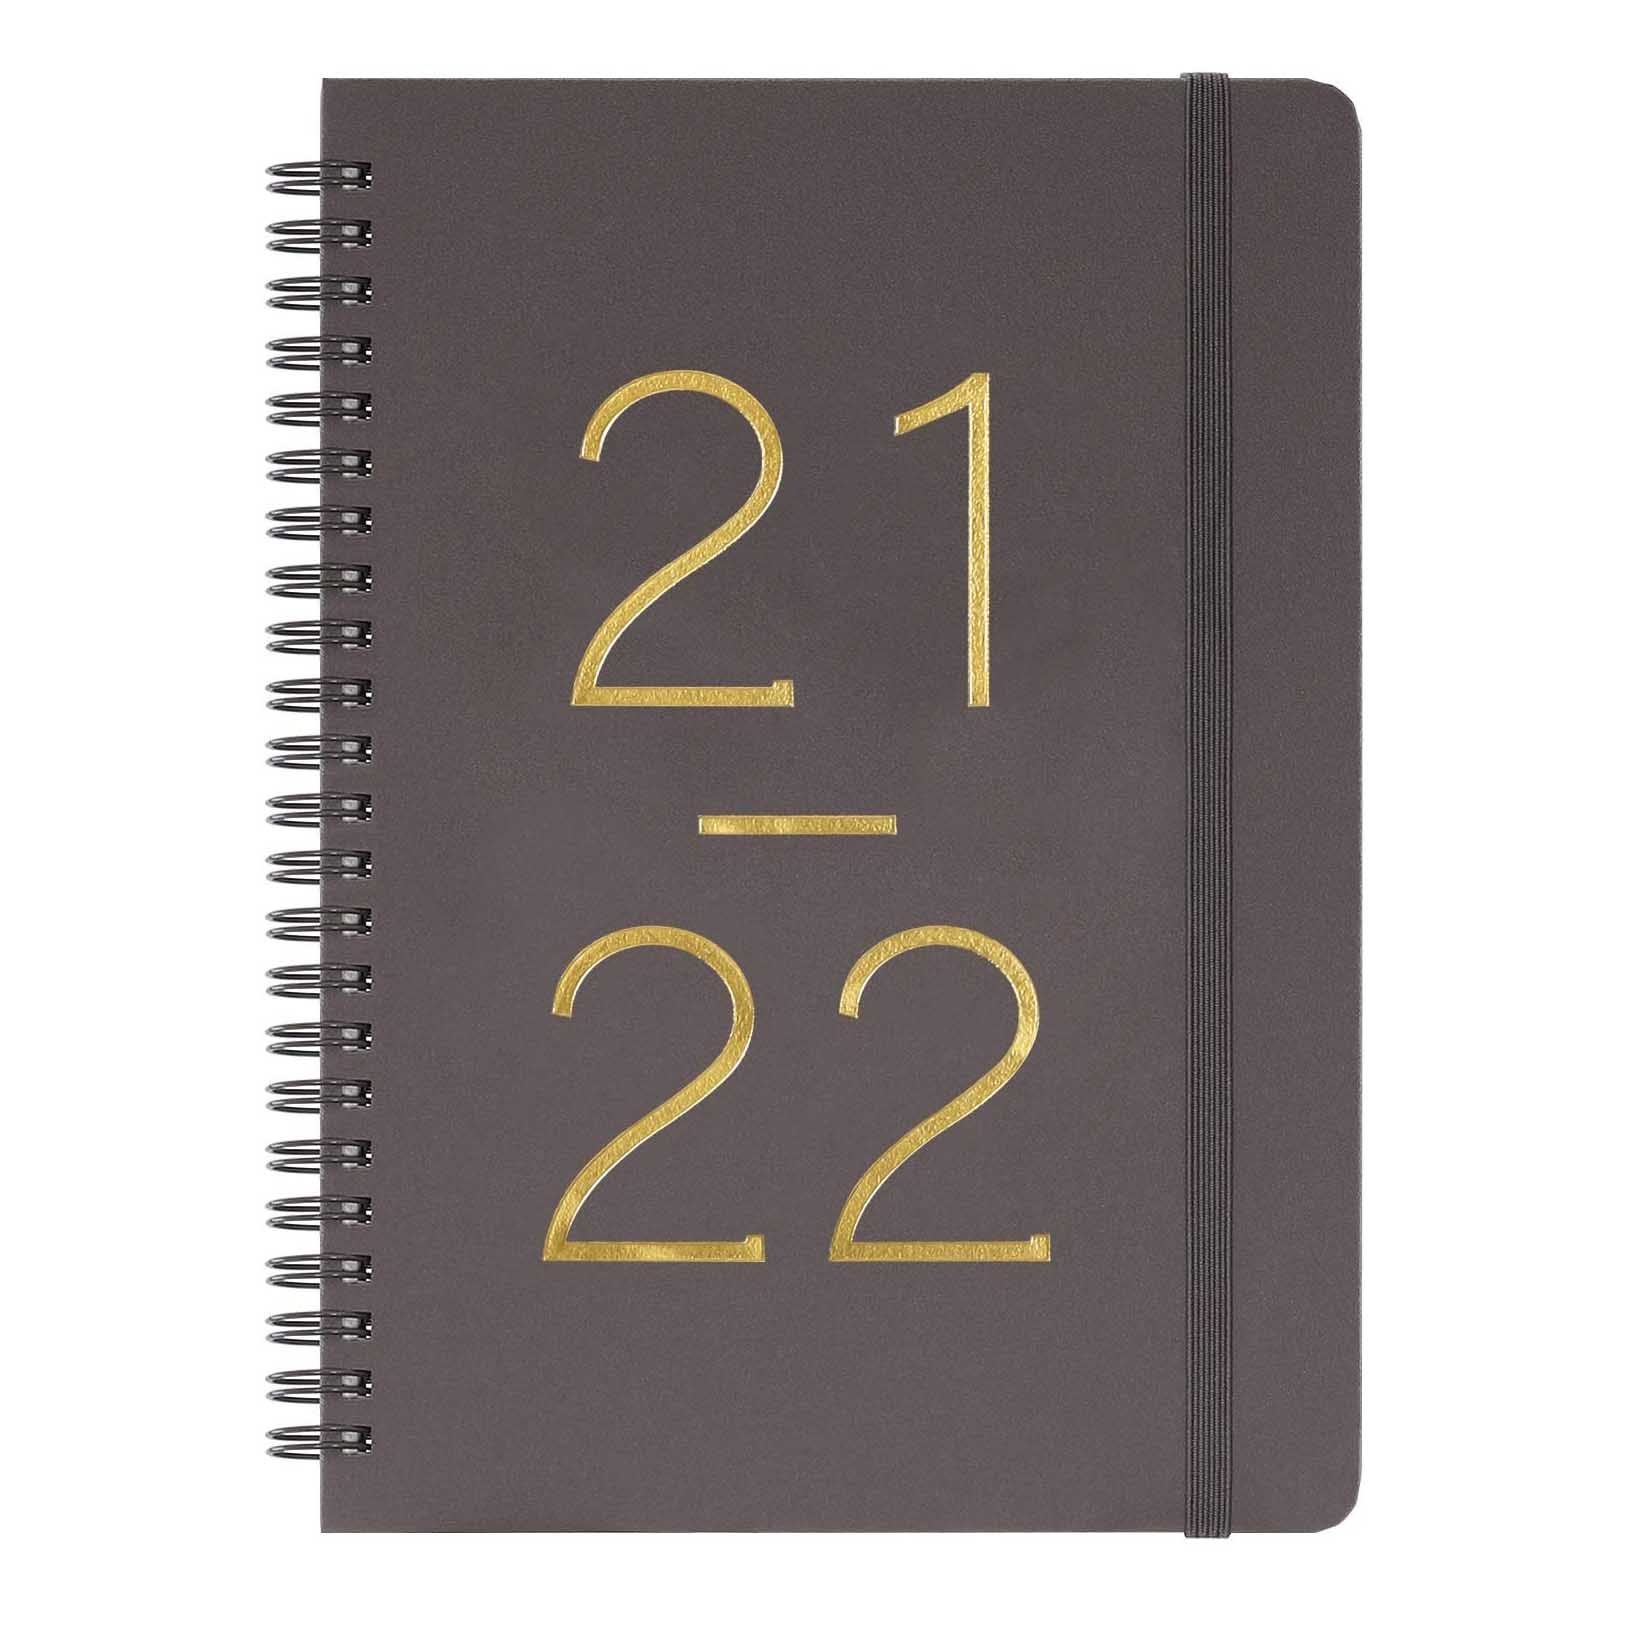 Frasukis Academic Planner 2021-2022 Flexible Cover with Twin-Wire Binding, Banded